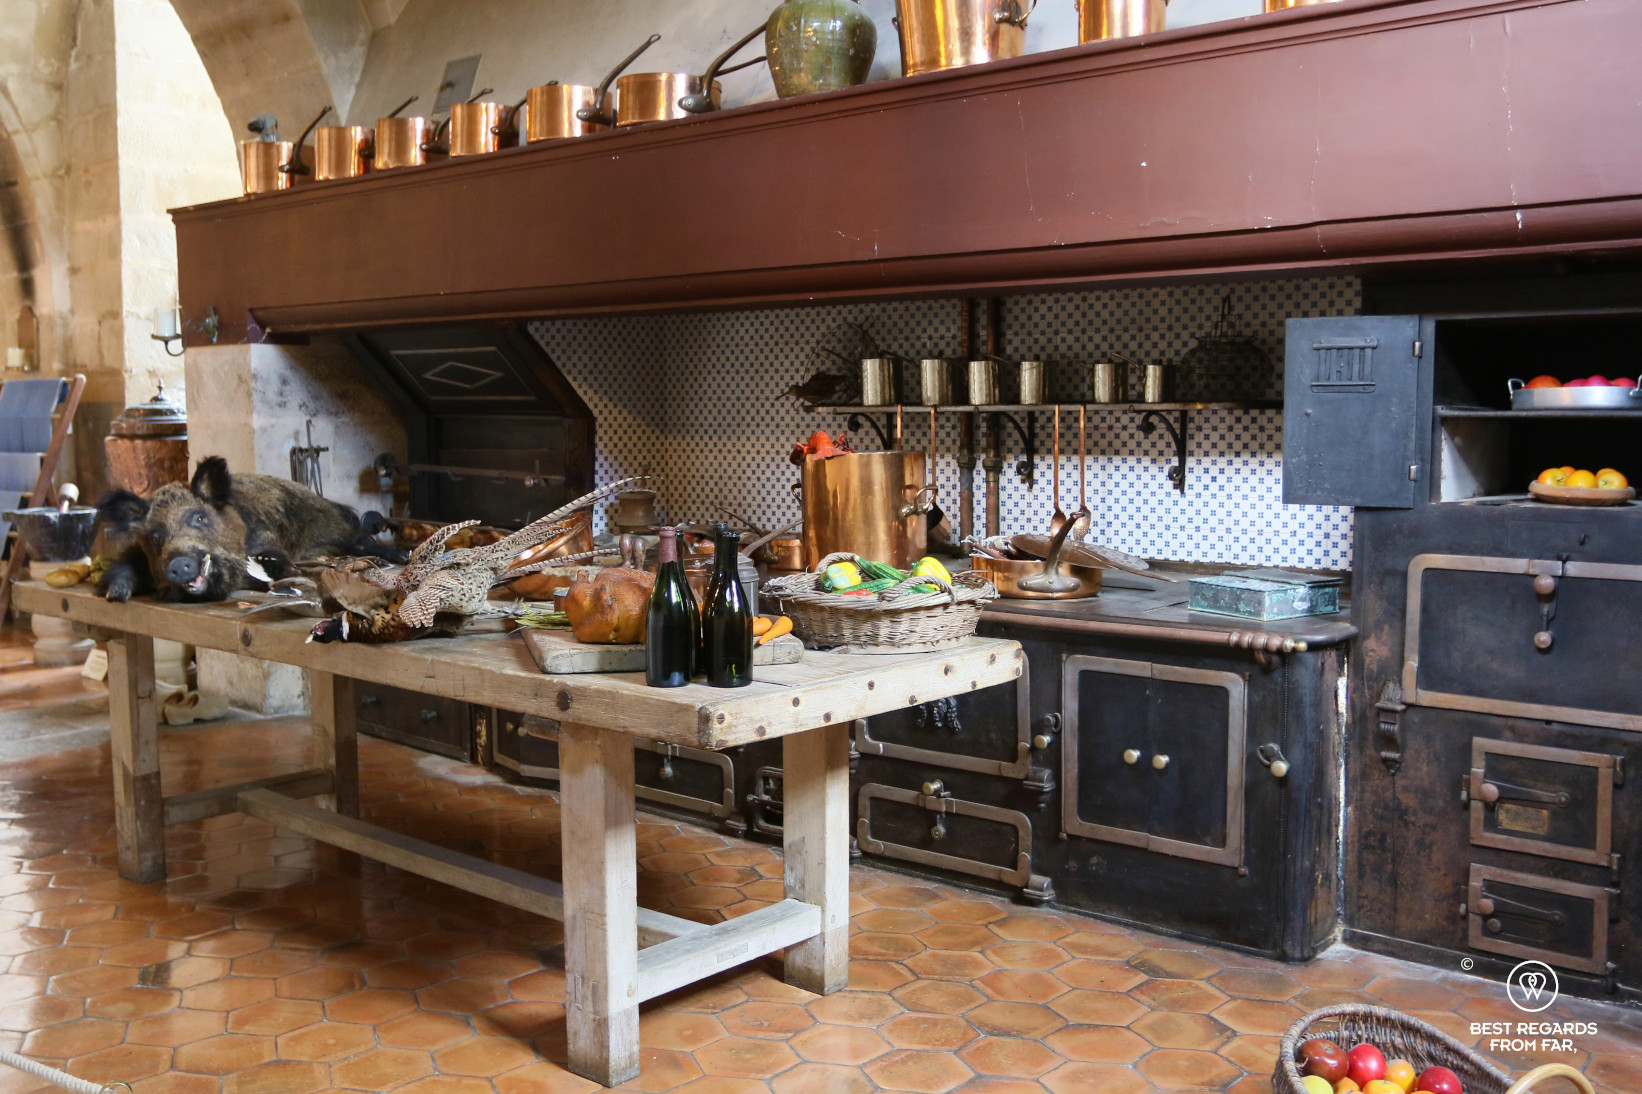 The kitchen of the castle of Vaux le Vicomte, France with its copper pots, abundant food and ancient stove.